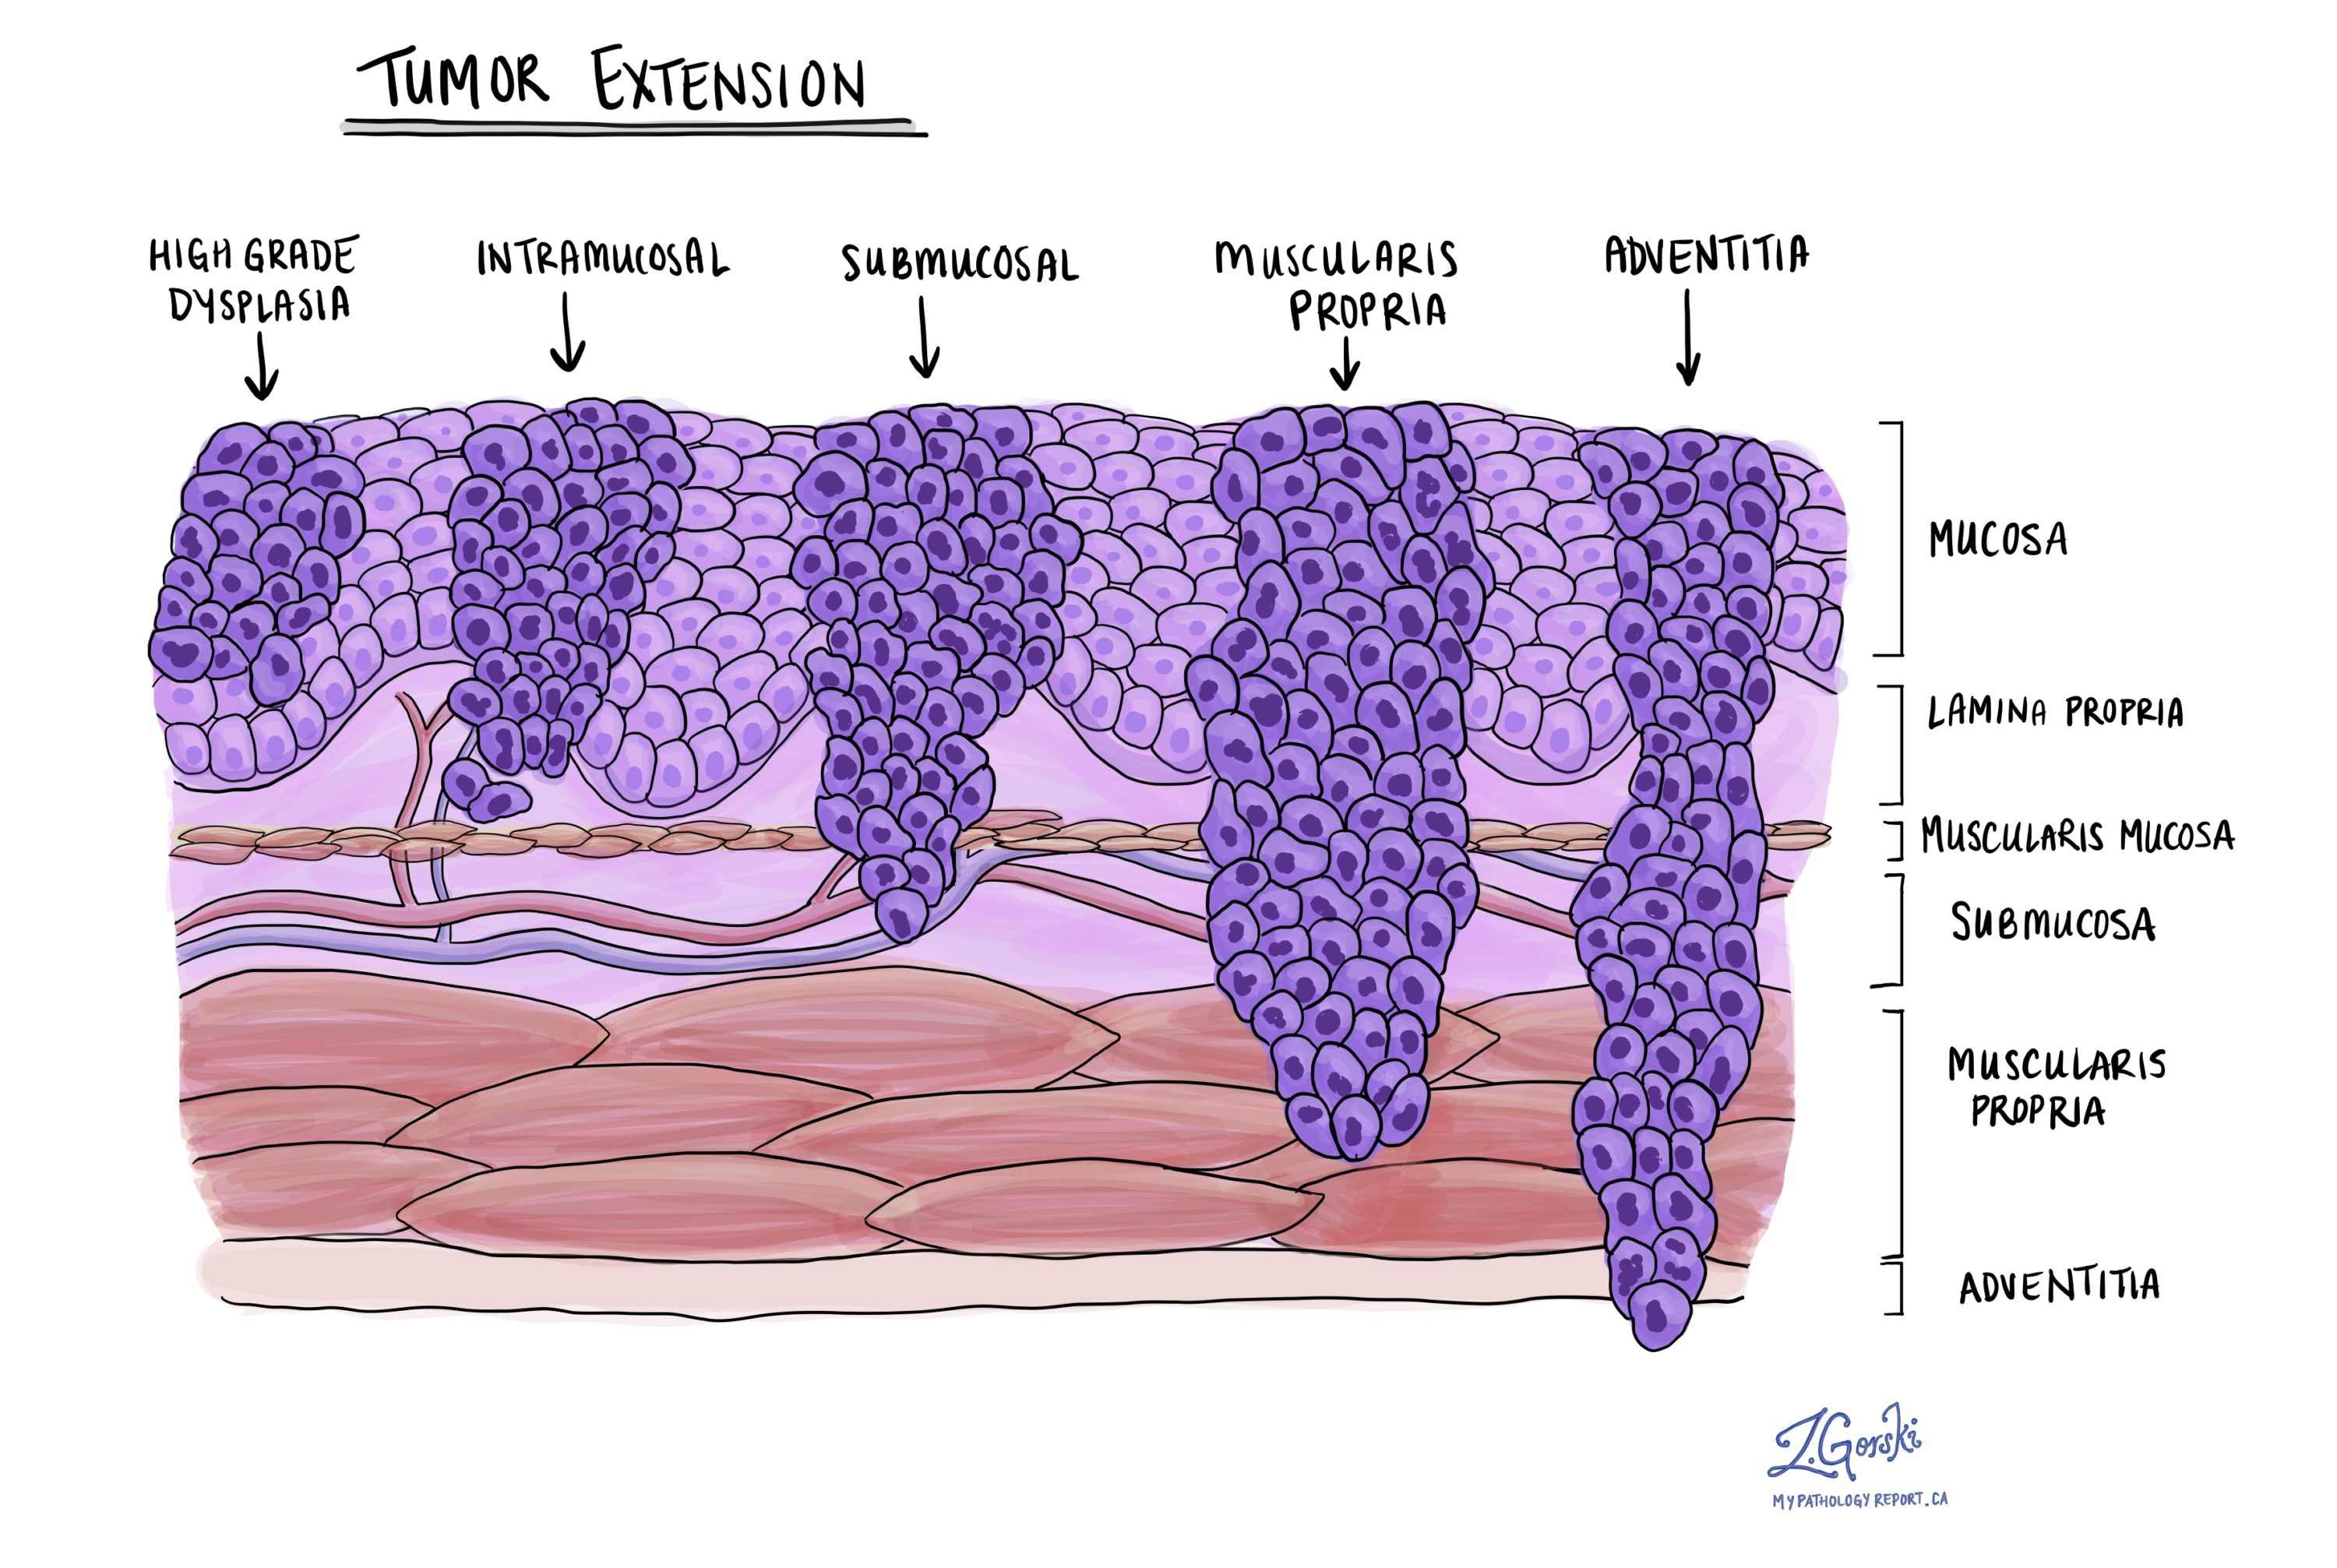 Esophagus dysplasia and squamous cell carcinoma